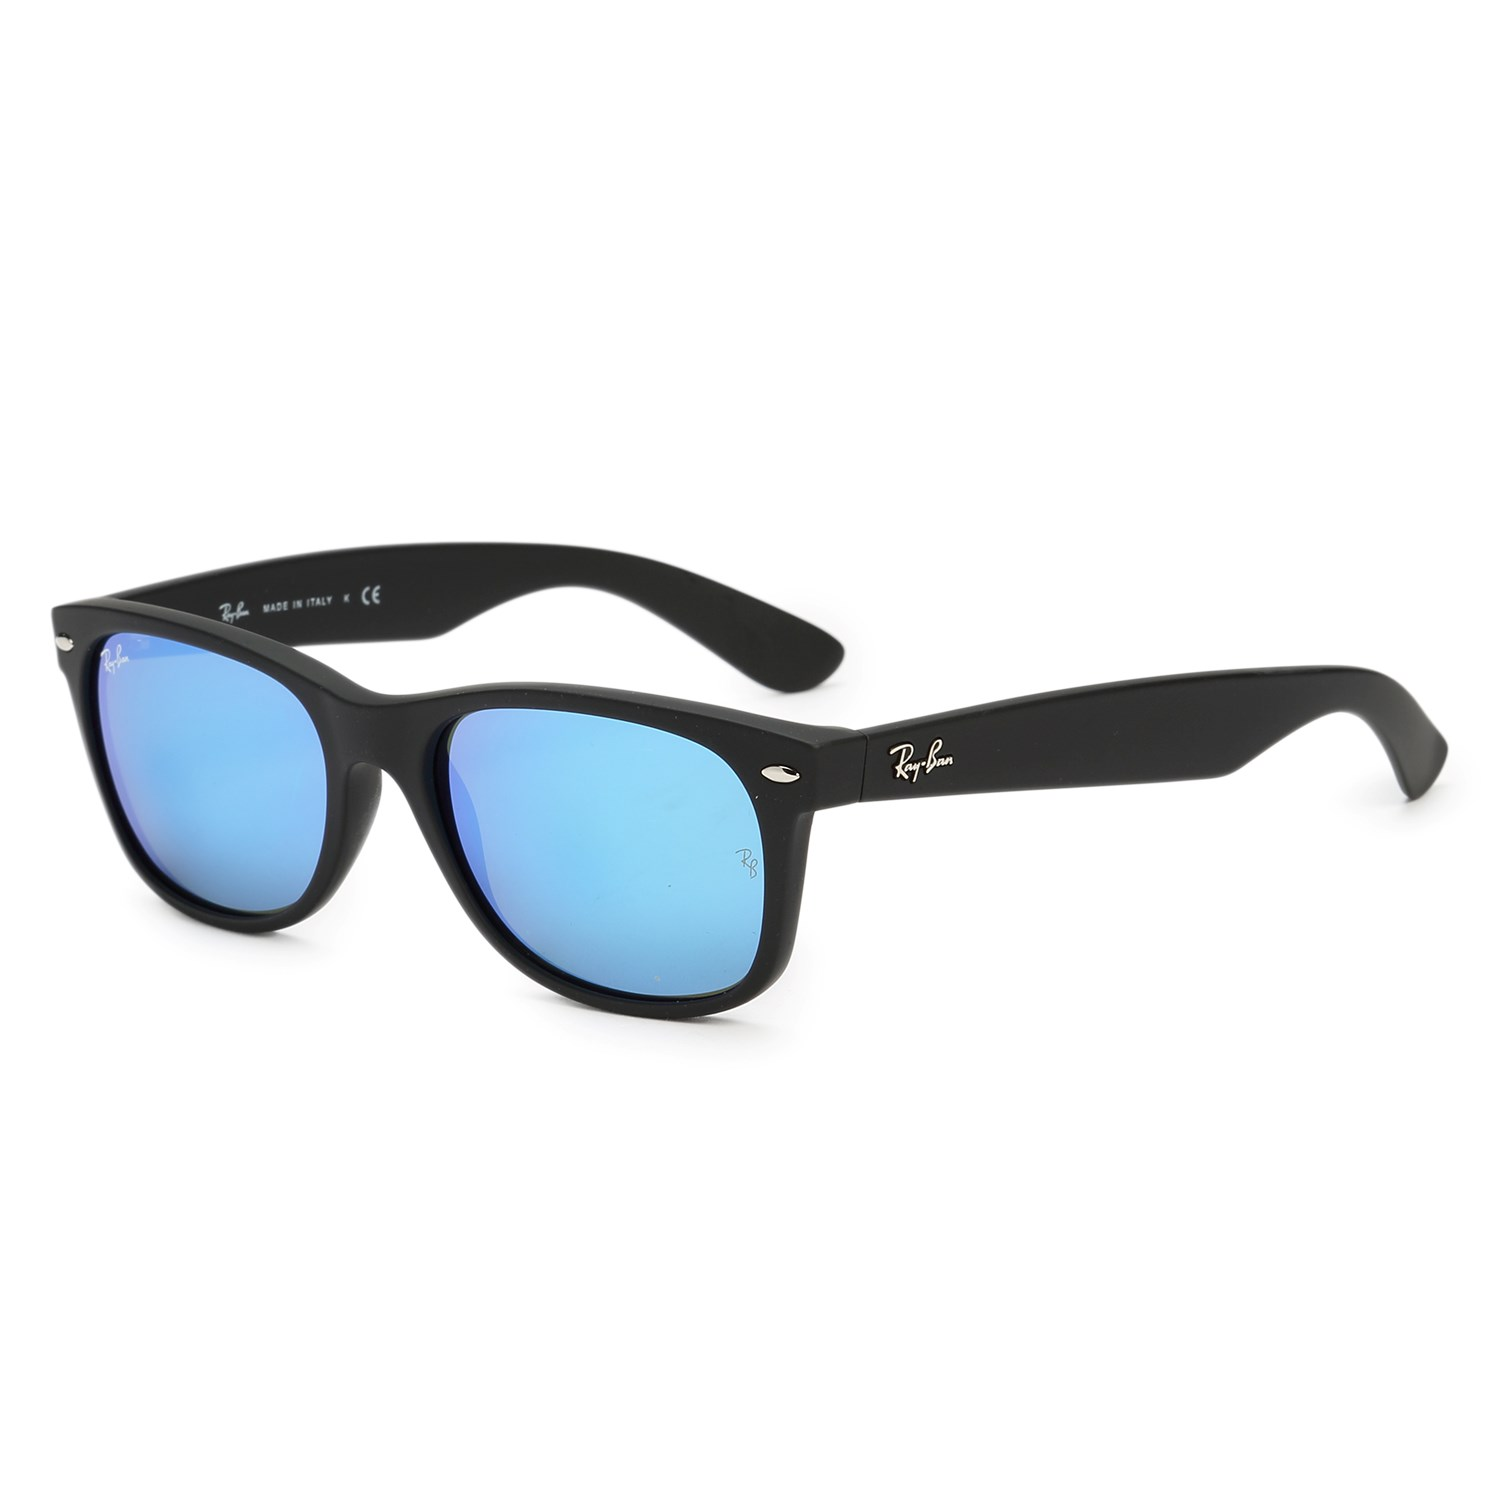 Ray ban sunglasses spare parts - Ray Ban Sunglasses Spare Parts Australia